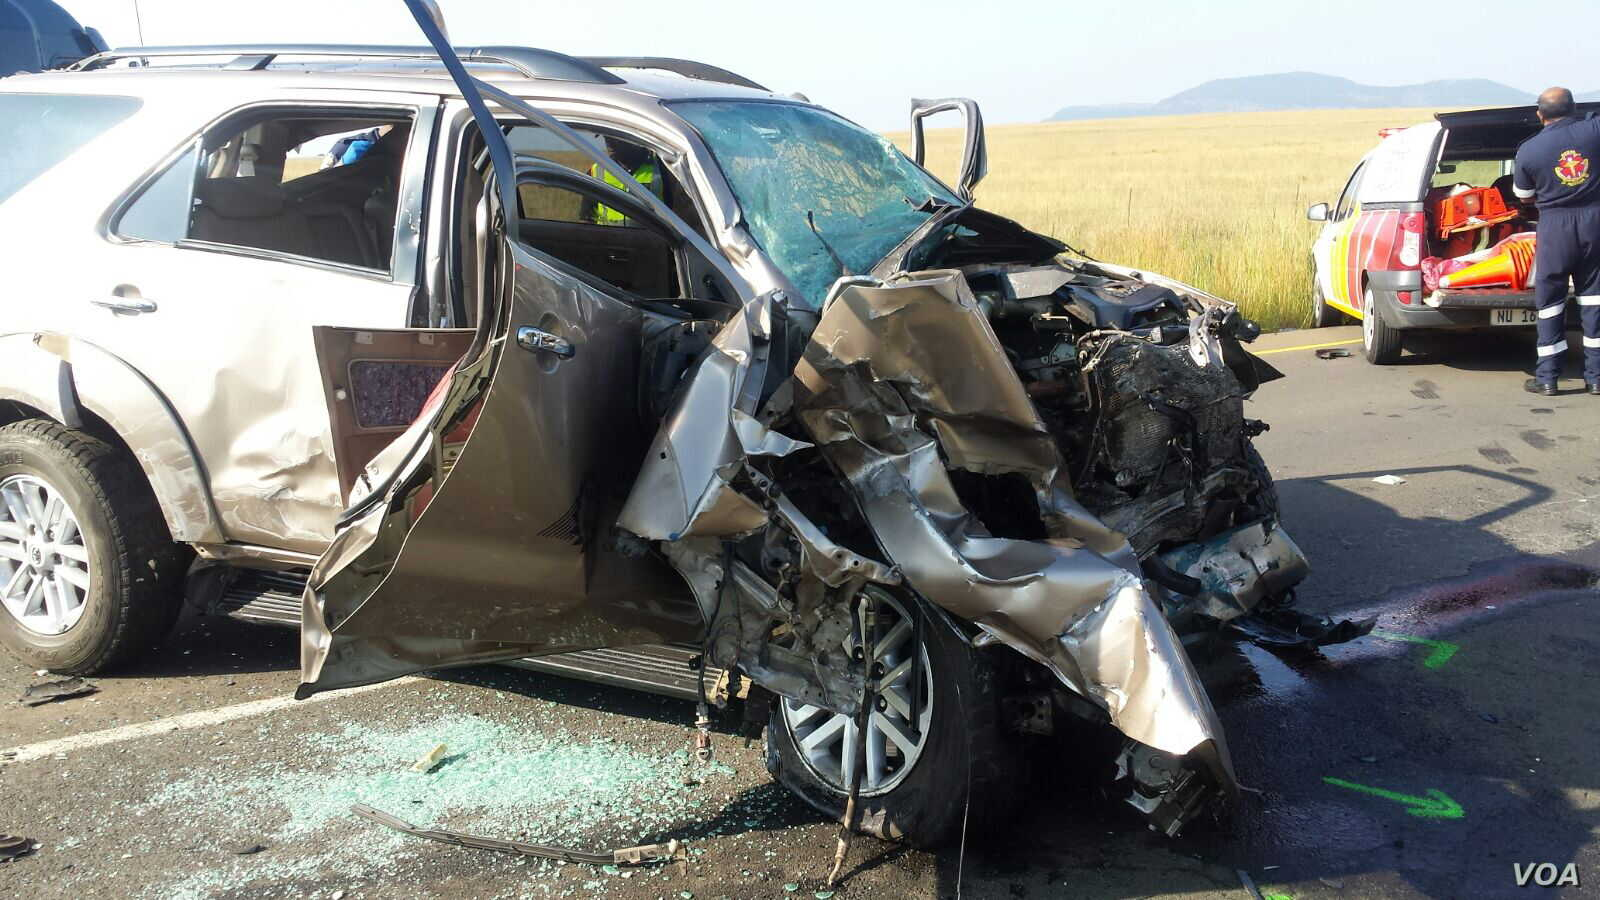 South African Road Accidents on Rise | Voice of America - English